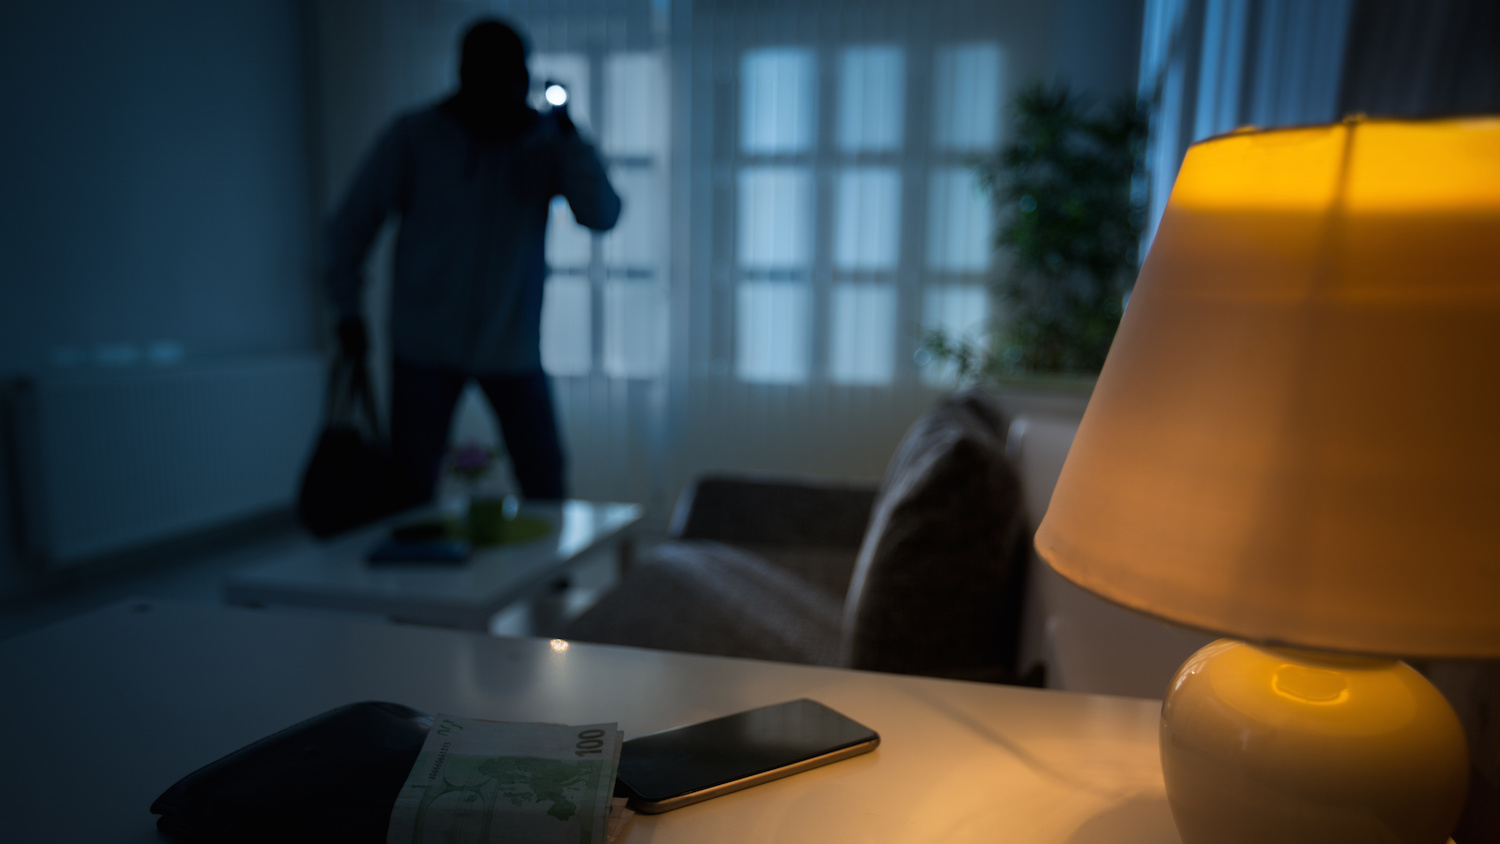 10 Things Criminals Look For in an Easy Target